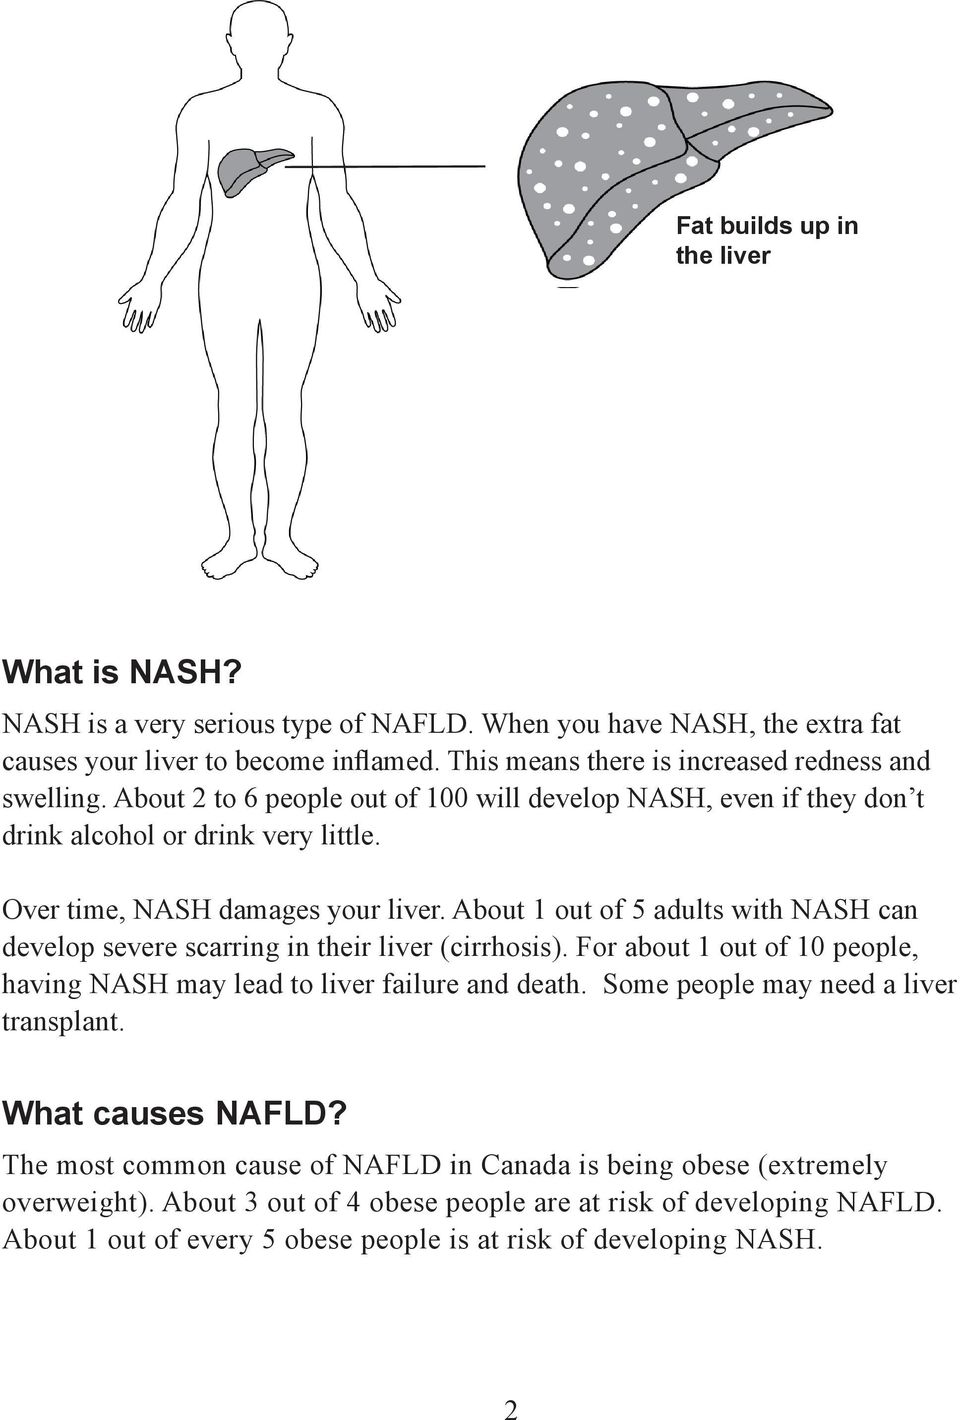 About 1 out of 5 adults with NASH can develop severe scarring in their liver (cirrhosis). For about 1 out of 10 people, having NASH may lead to liver failure and death.